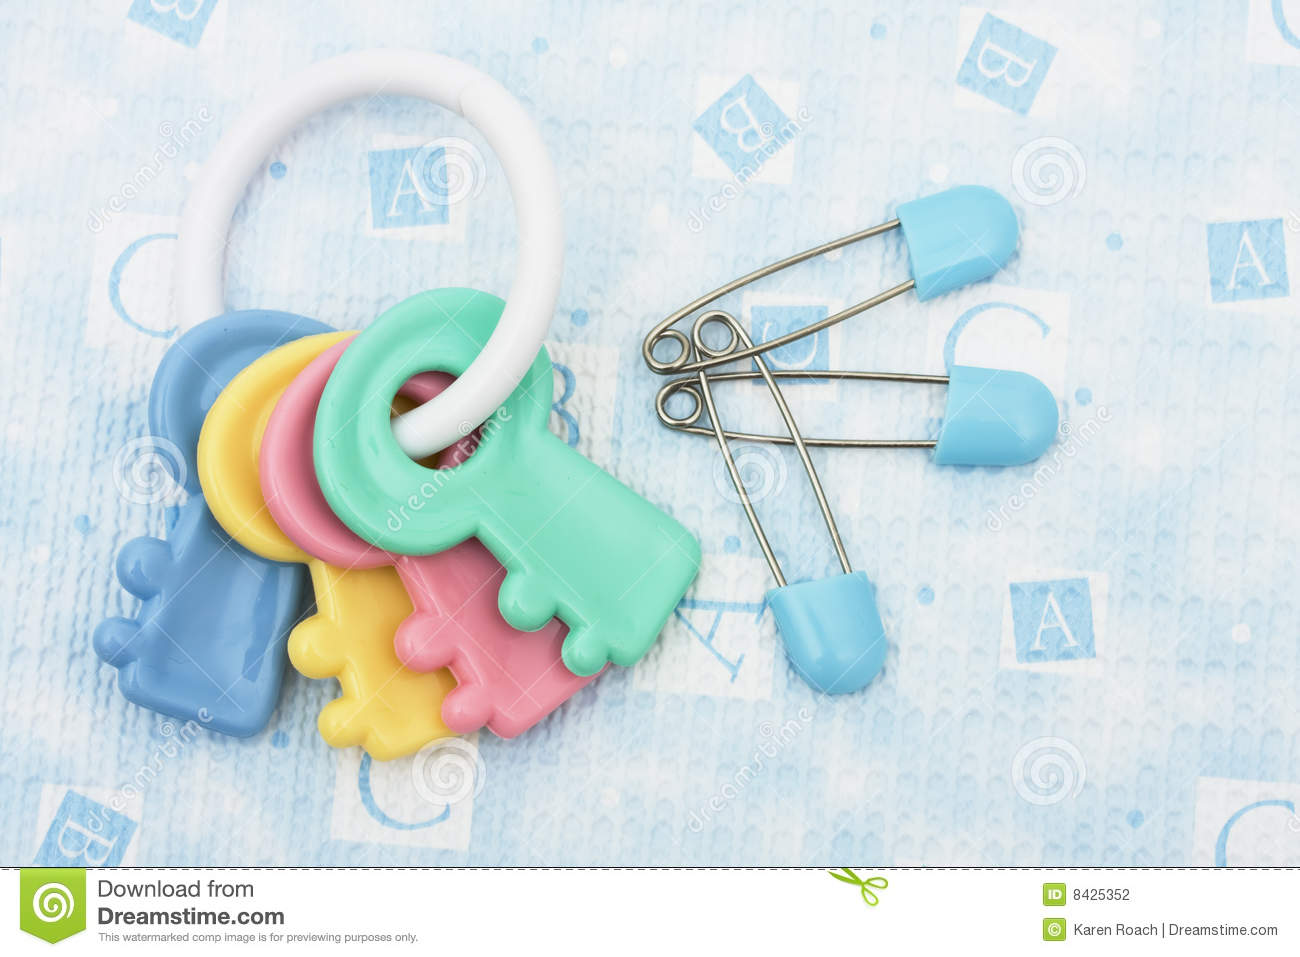 Diaper Pins and Rattle